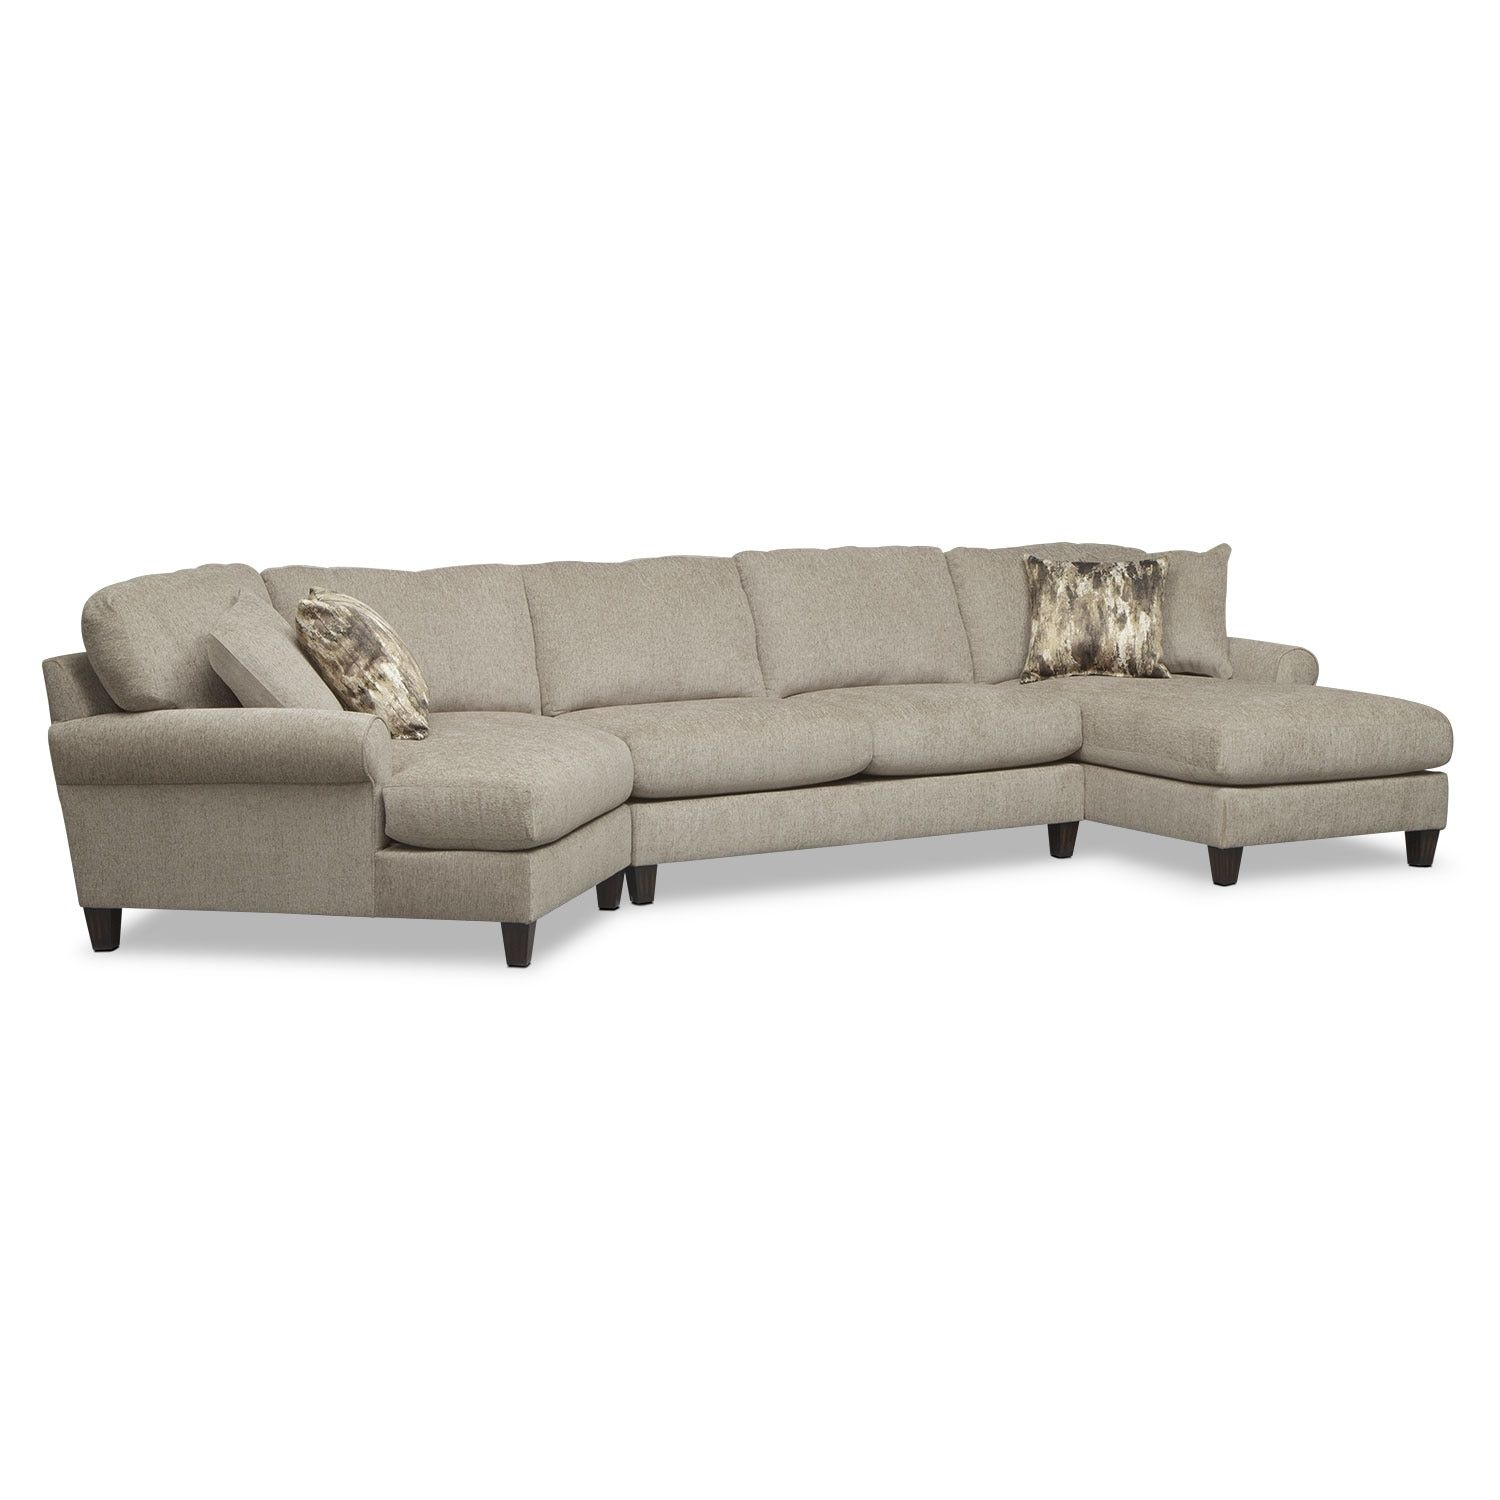 Karma 3 Piece Sectional With Left Facing Cuddler And Right Facing